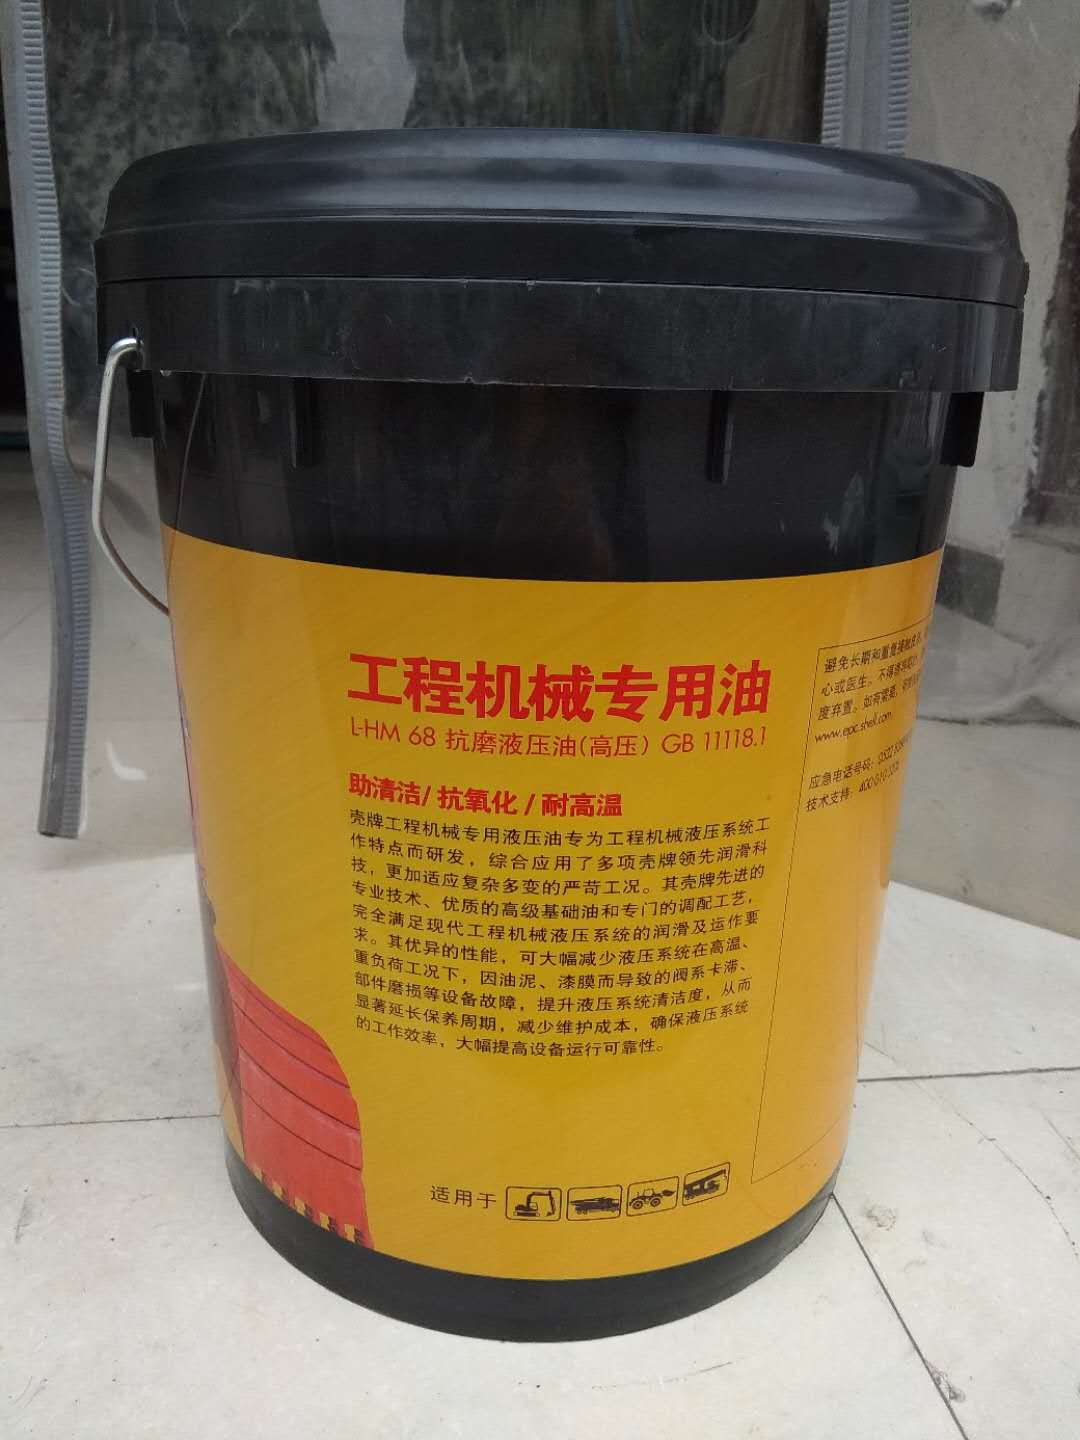 Long-term engineering machinery special hydraulic oil H2 68 engineering machinery hydraulic oil extreme pressure composite hydraulic oil